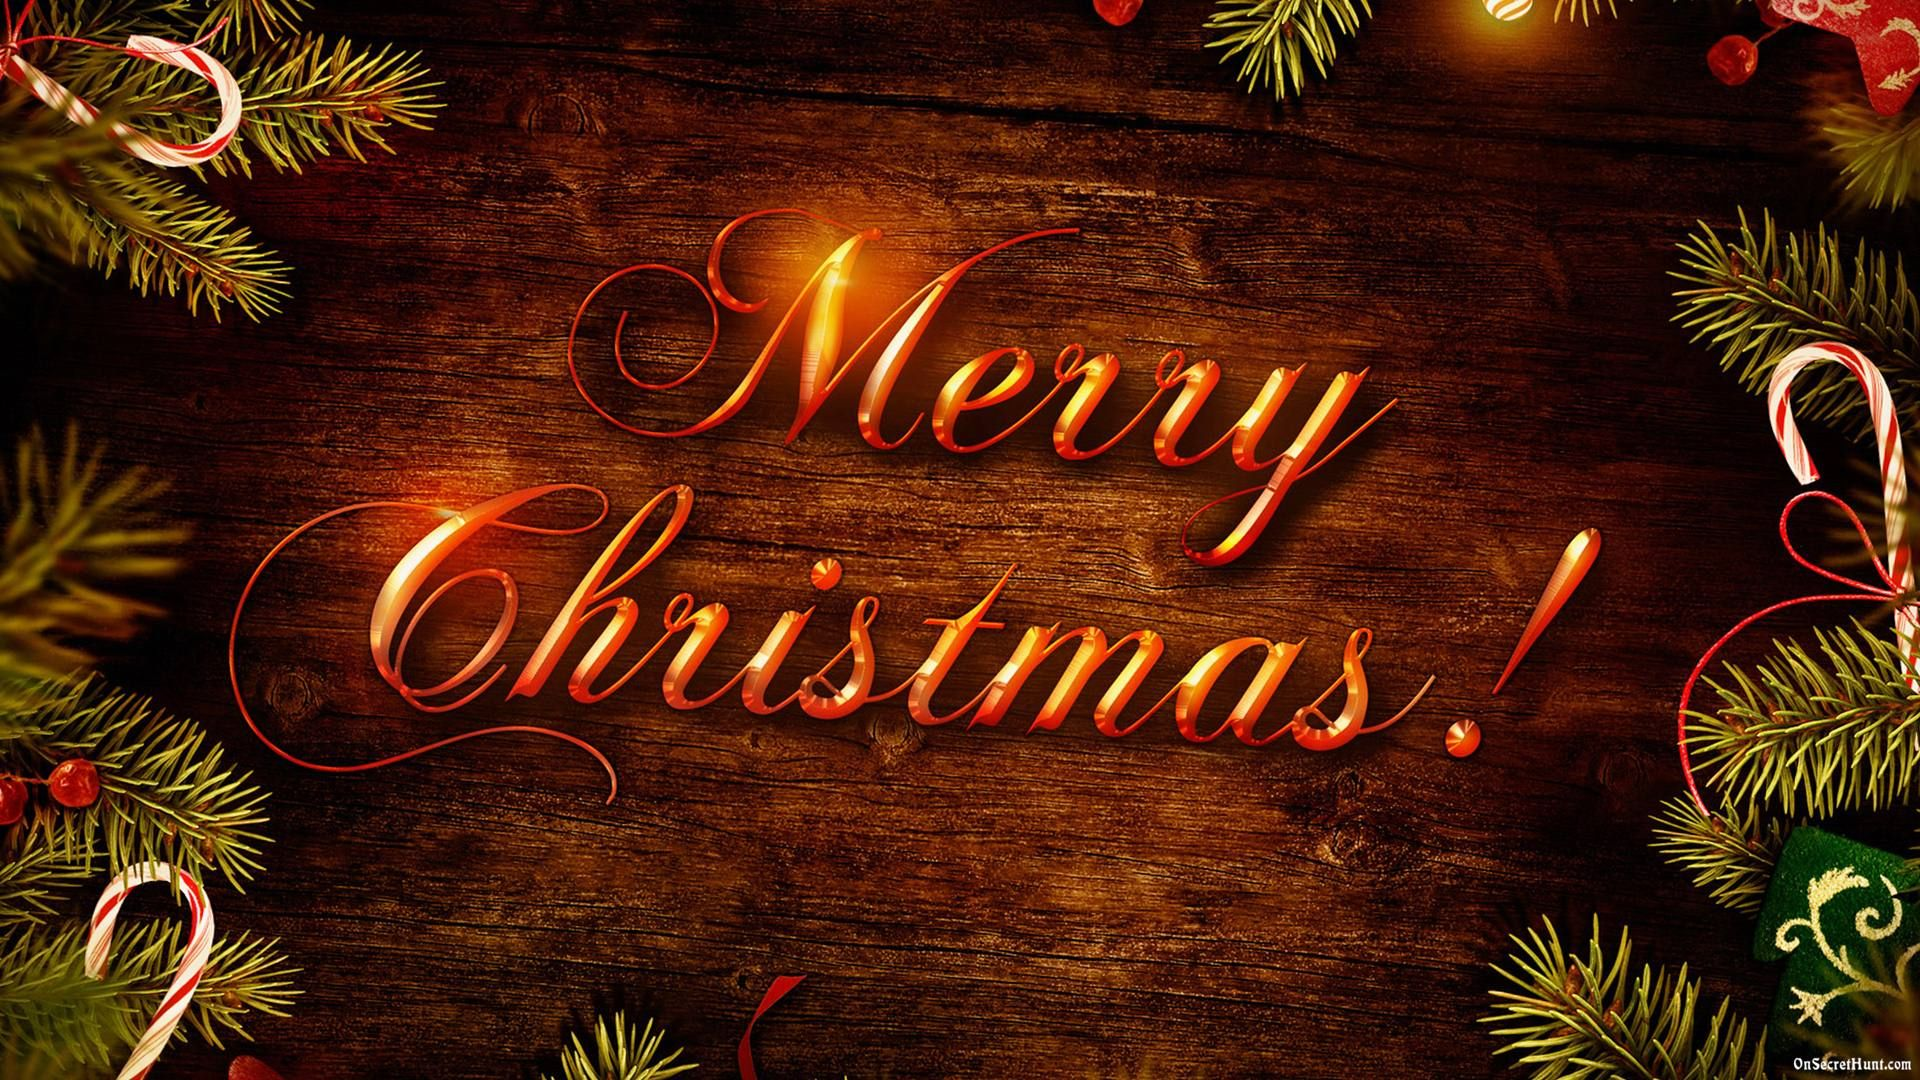 3d Christmas Wallpapers Merry Christmas Wallpaper Merry Christmas Pictures Christmas Desktop